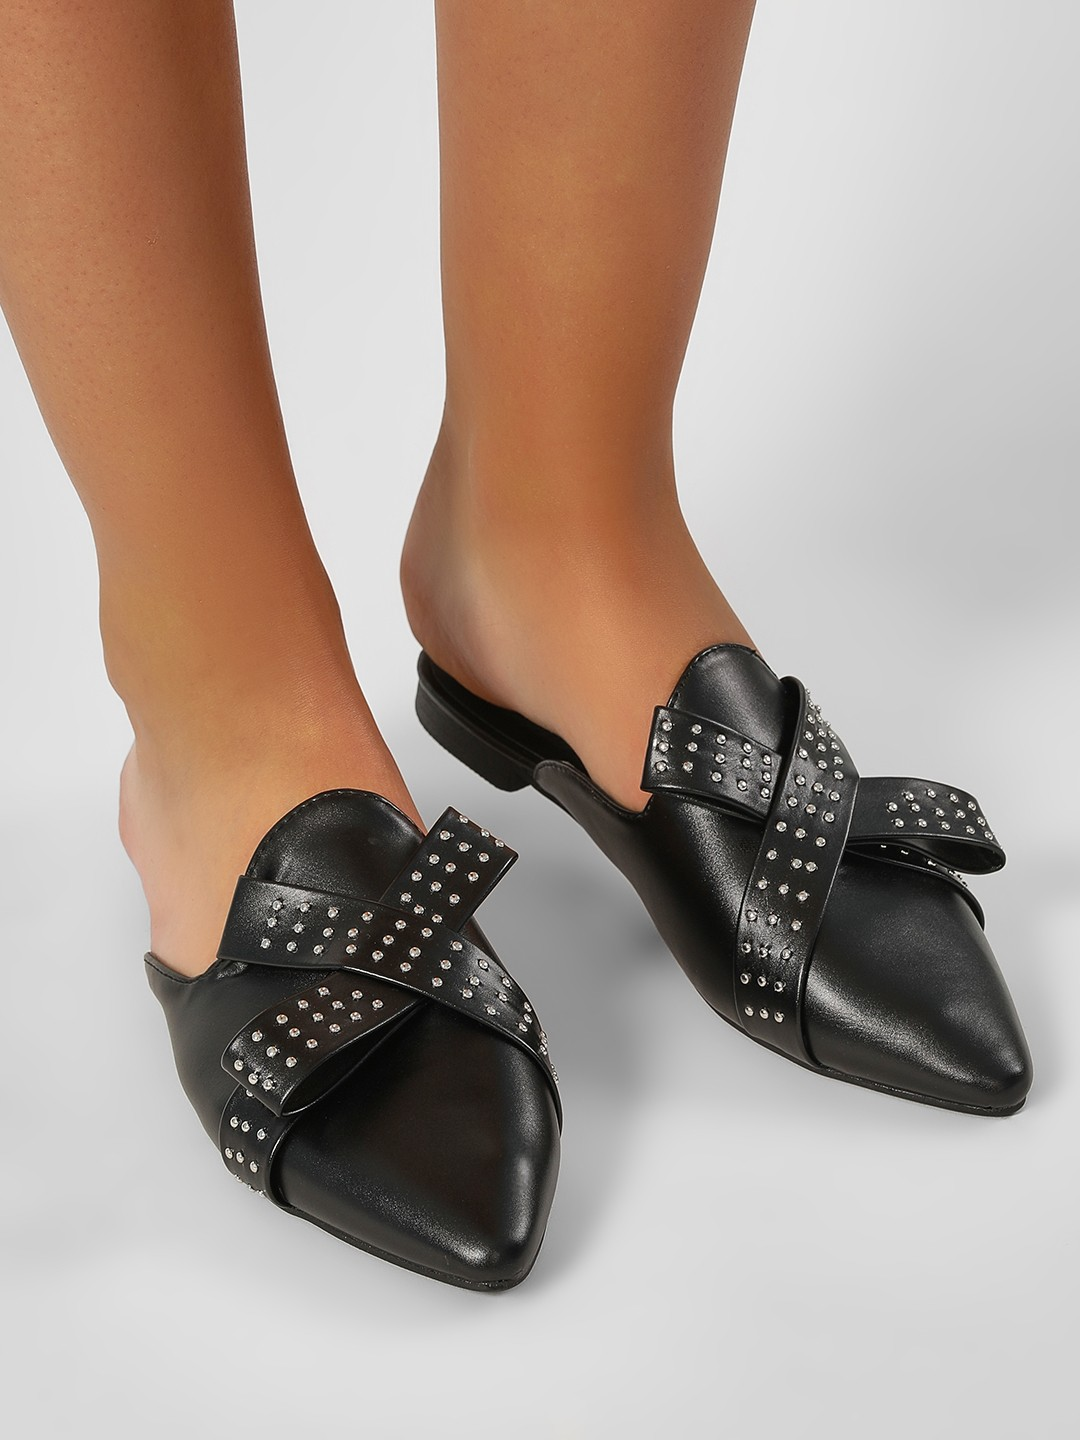 My Foot Couture Black Stud Bow Detail Flat Mules 1